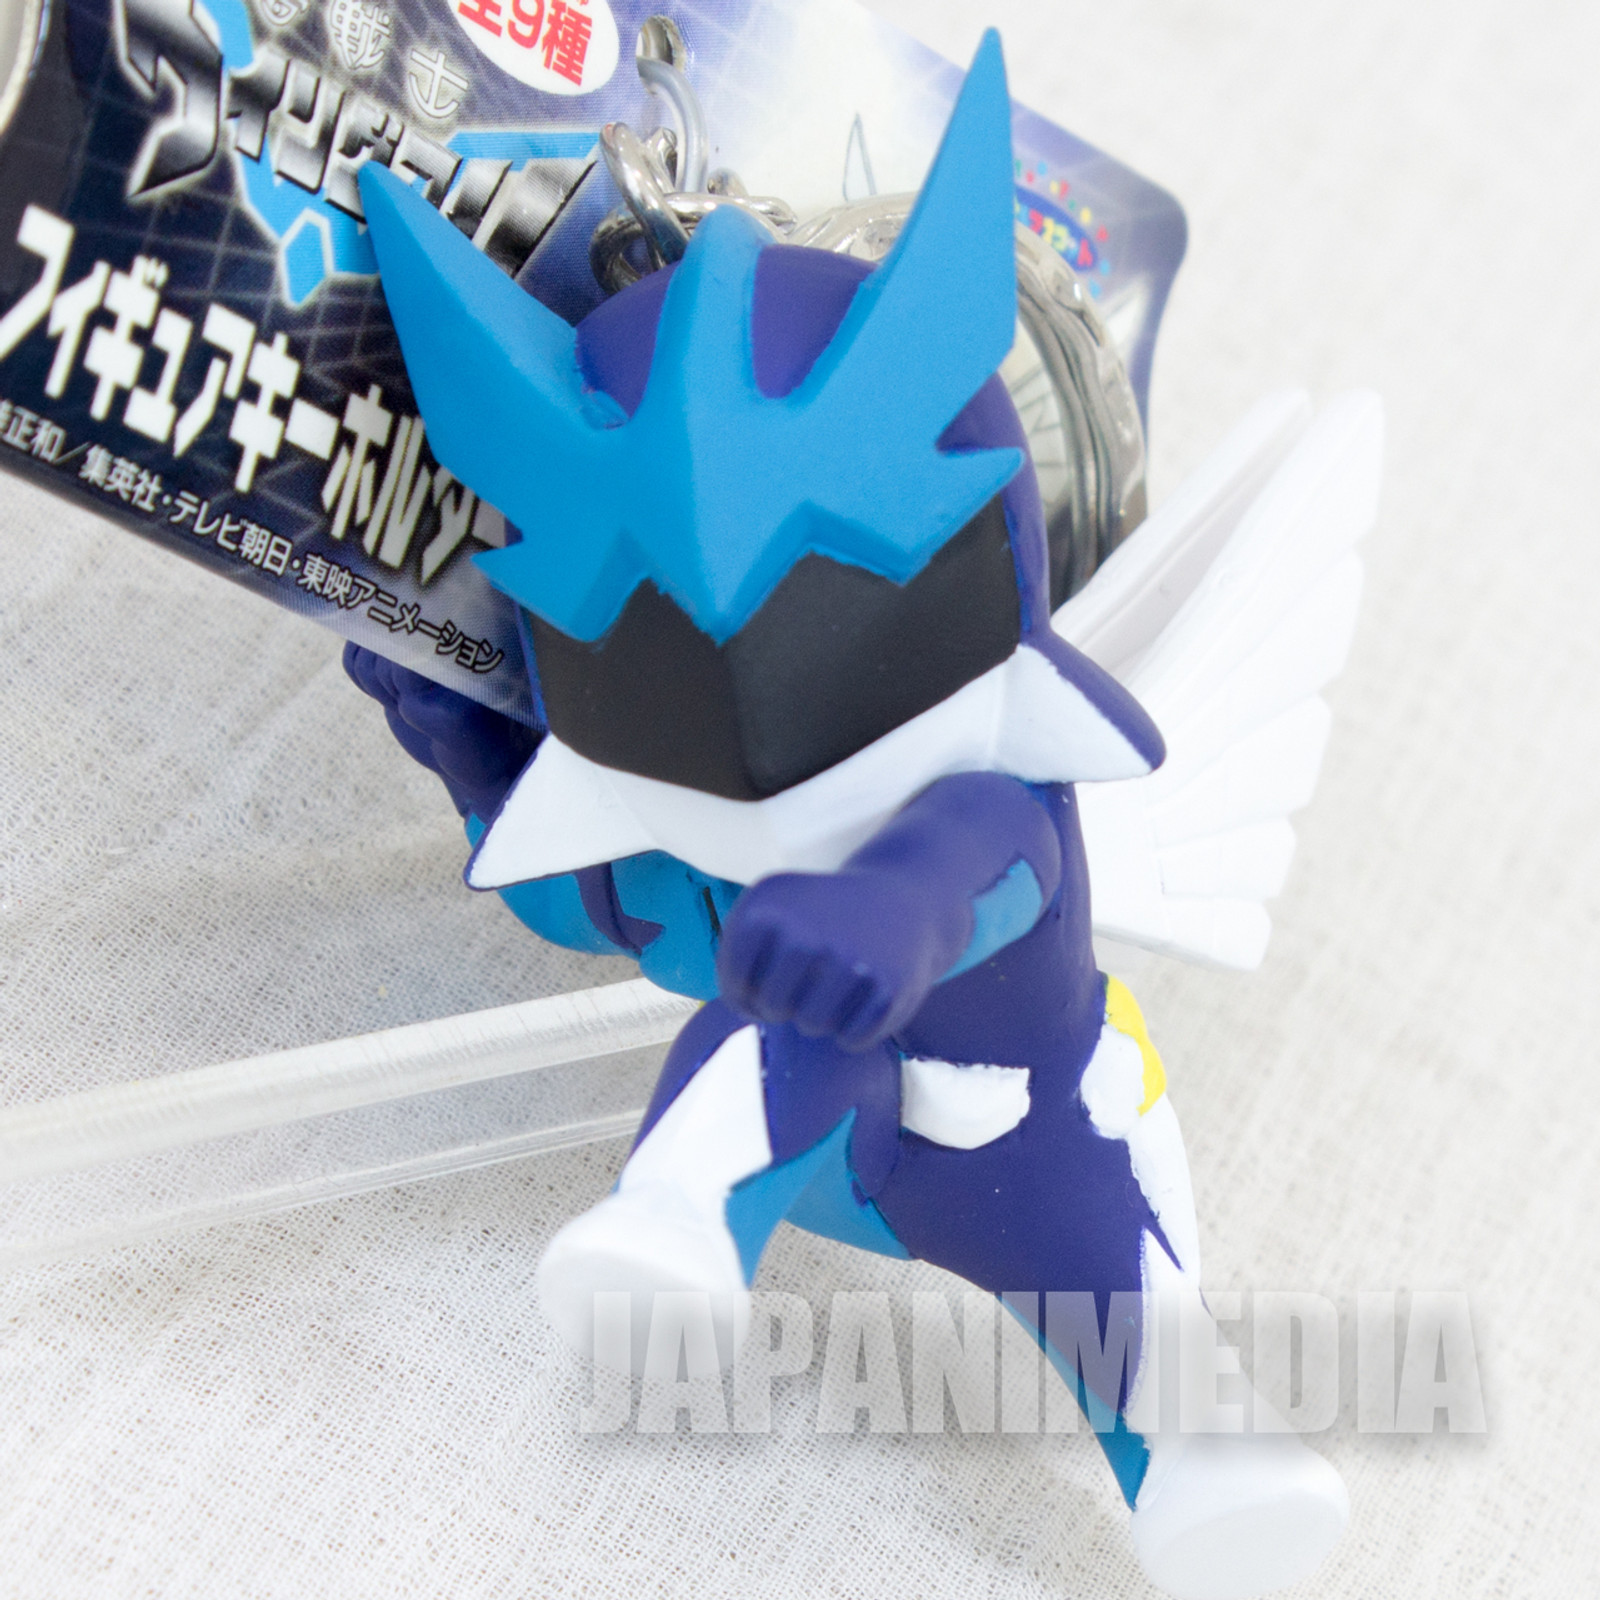 WINGMAN Blue ver. Figure Keychain Banpresto JAPAN ANIME MANGA